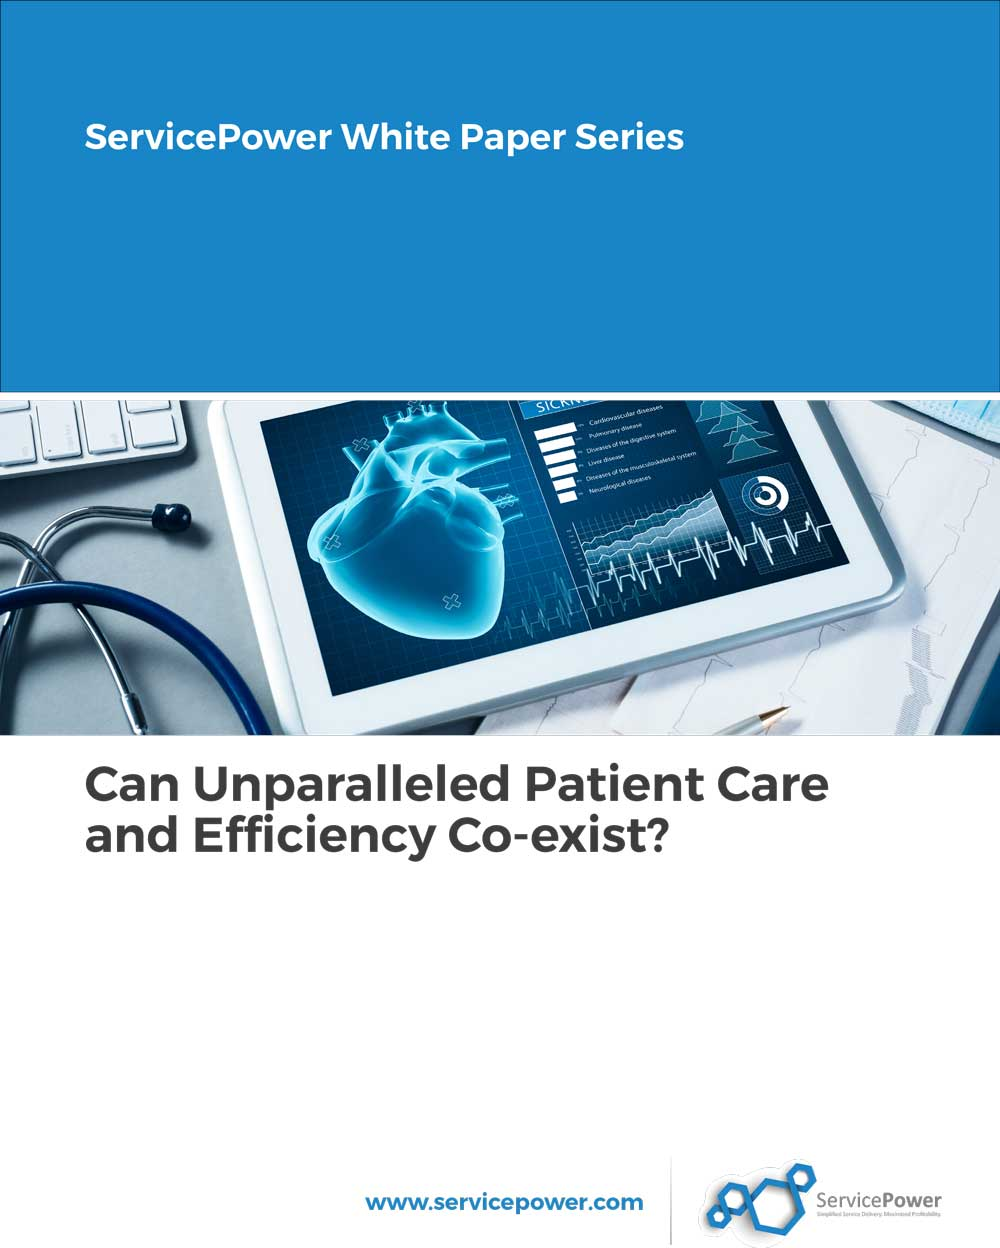 Can Unparalleled Patient Care and Efficiency Co-exist?